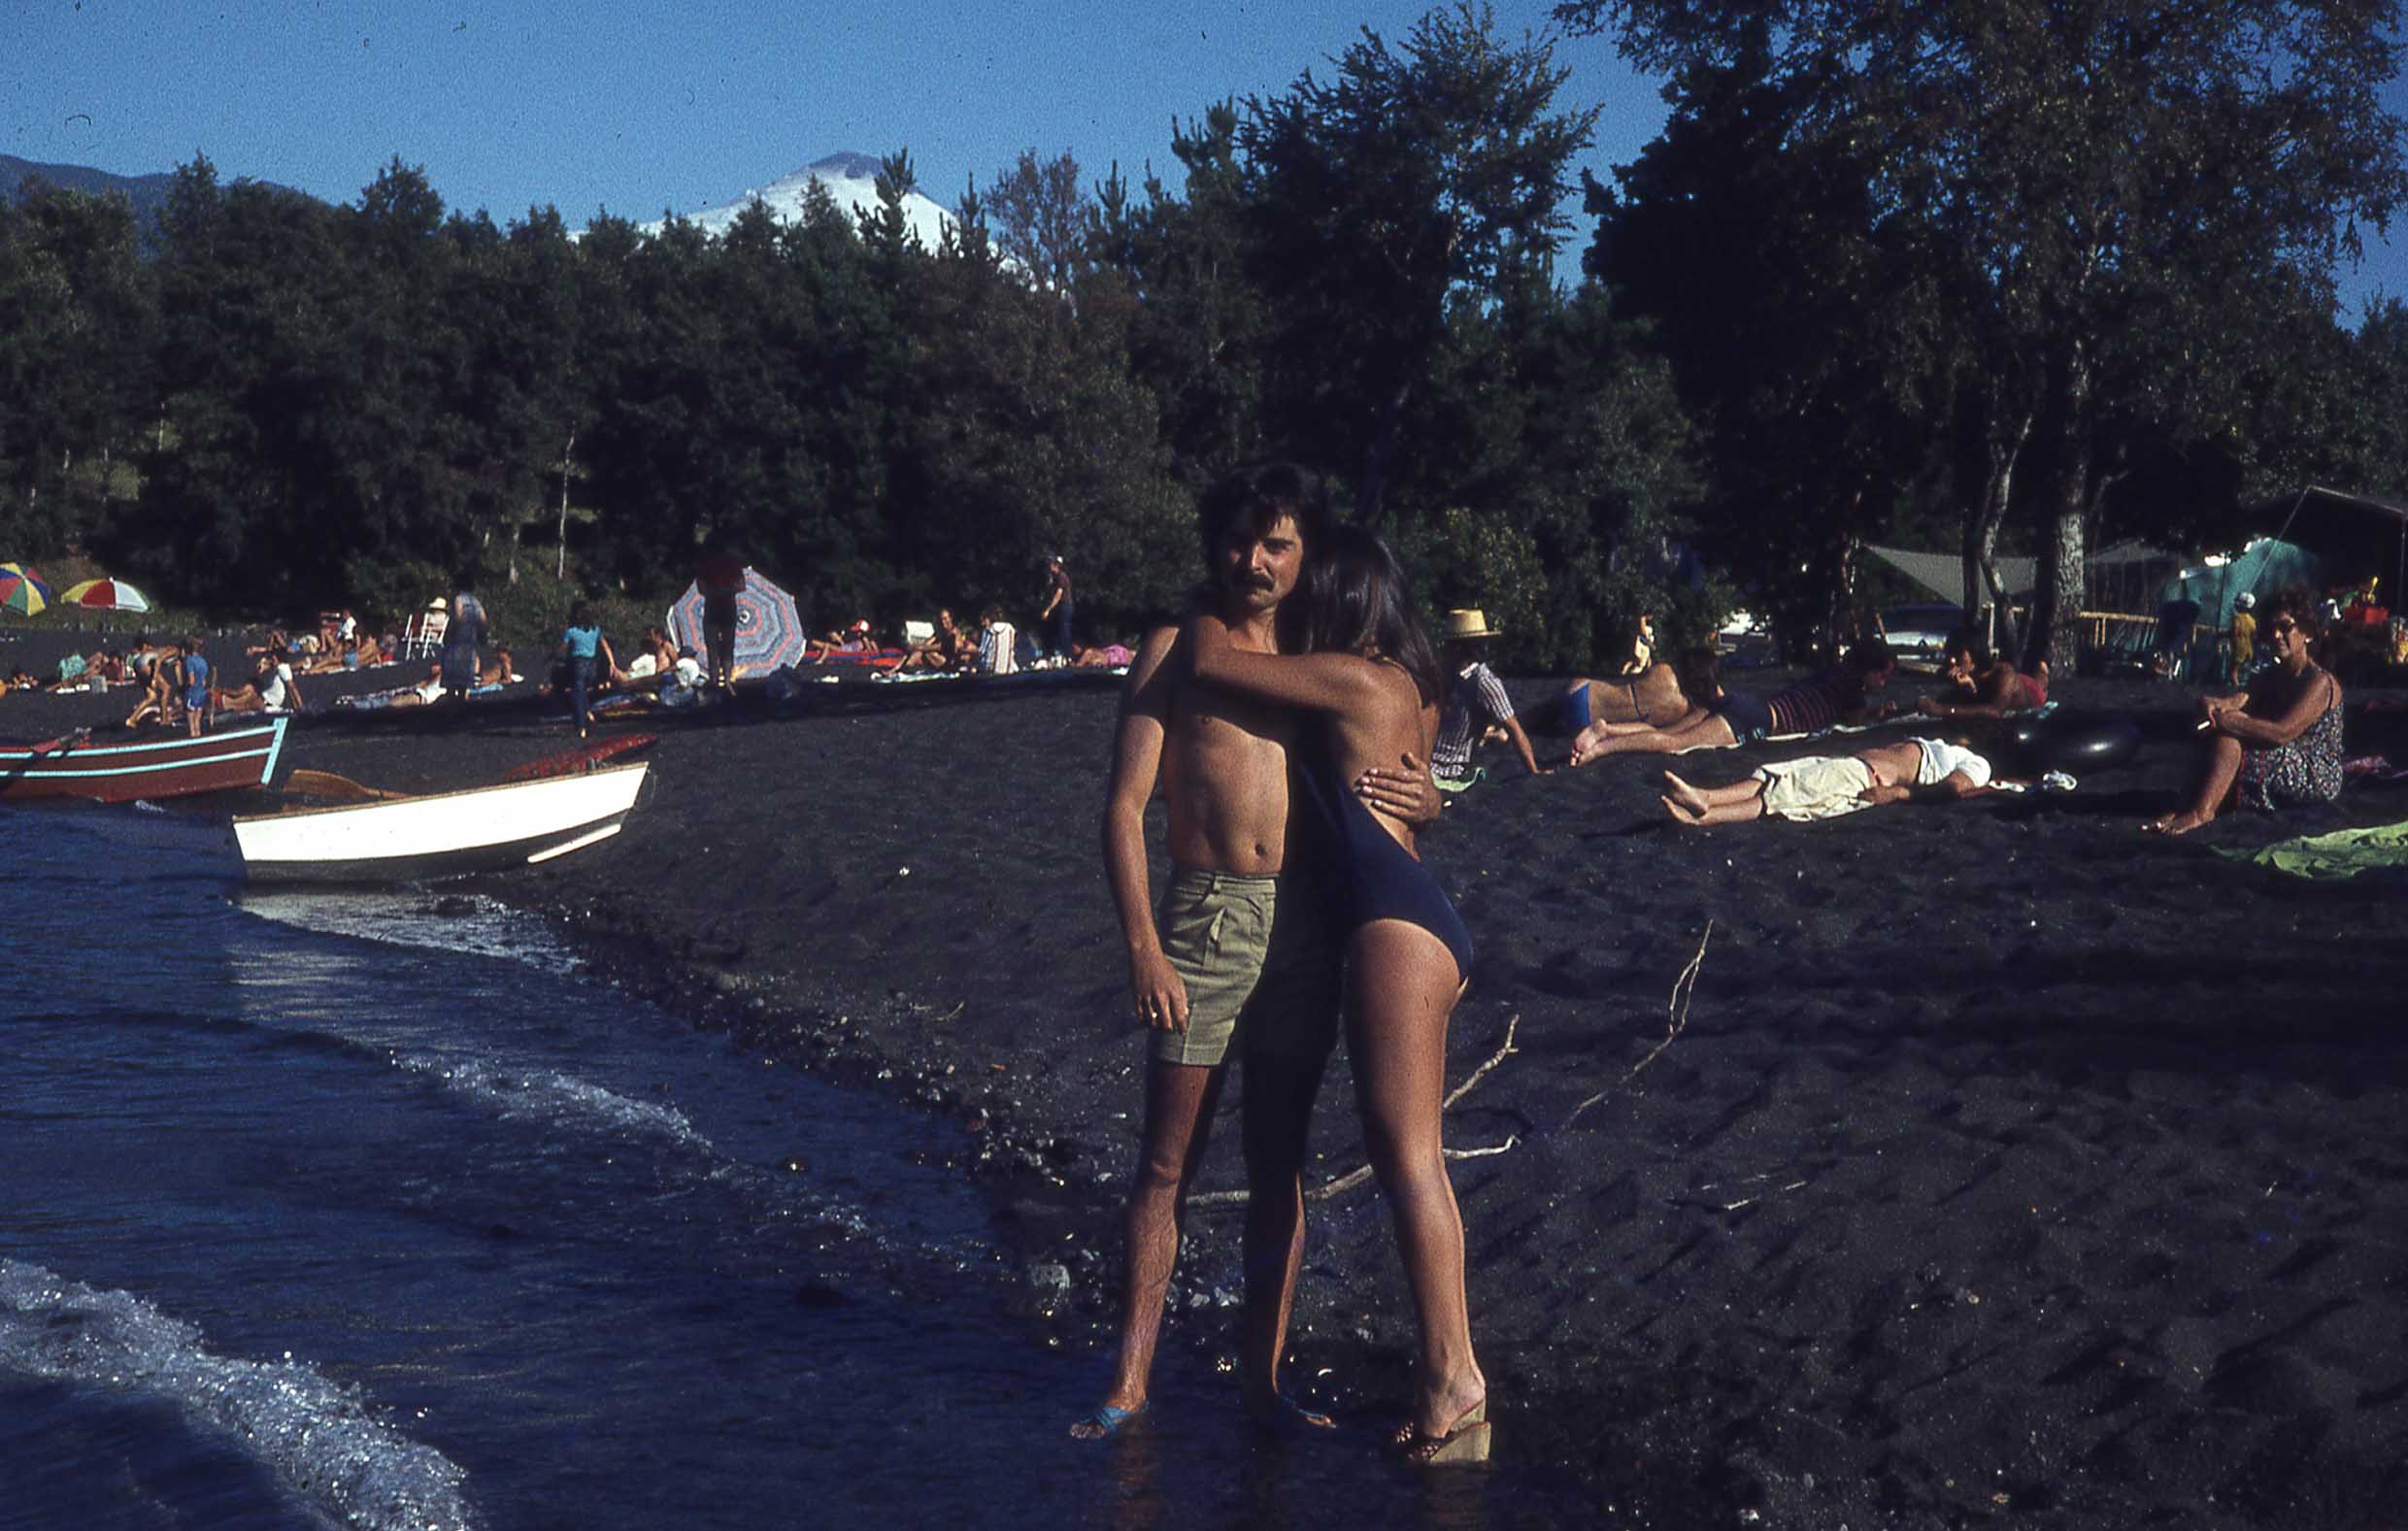 Enterreno - Fotos históricas de chile - fotos antiguas de Chile - Playa de Pucón a finales de los 70